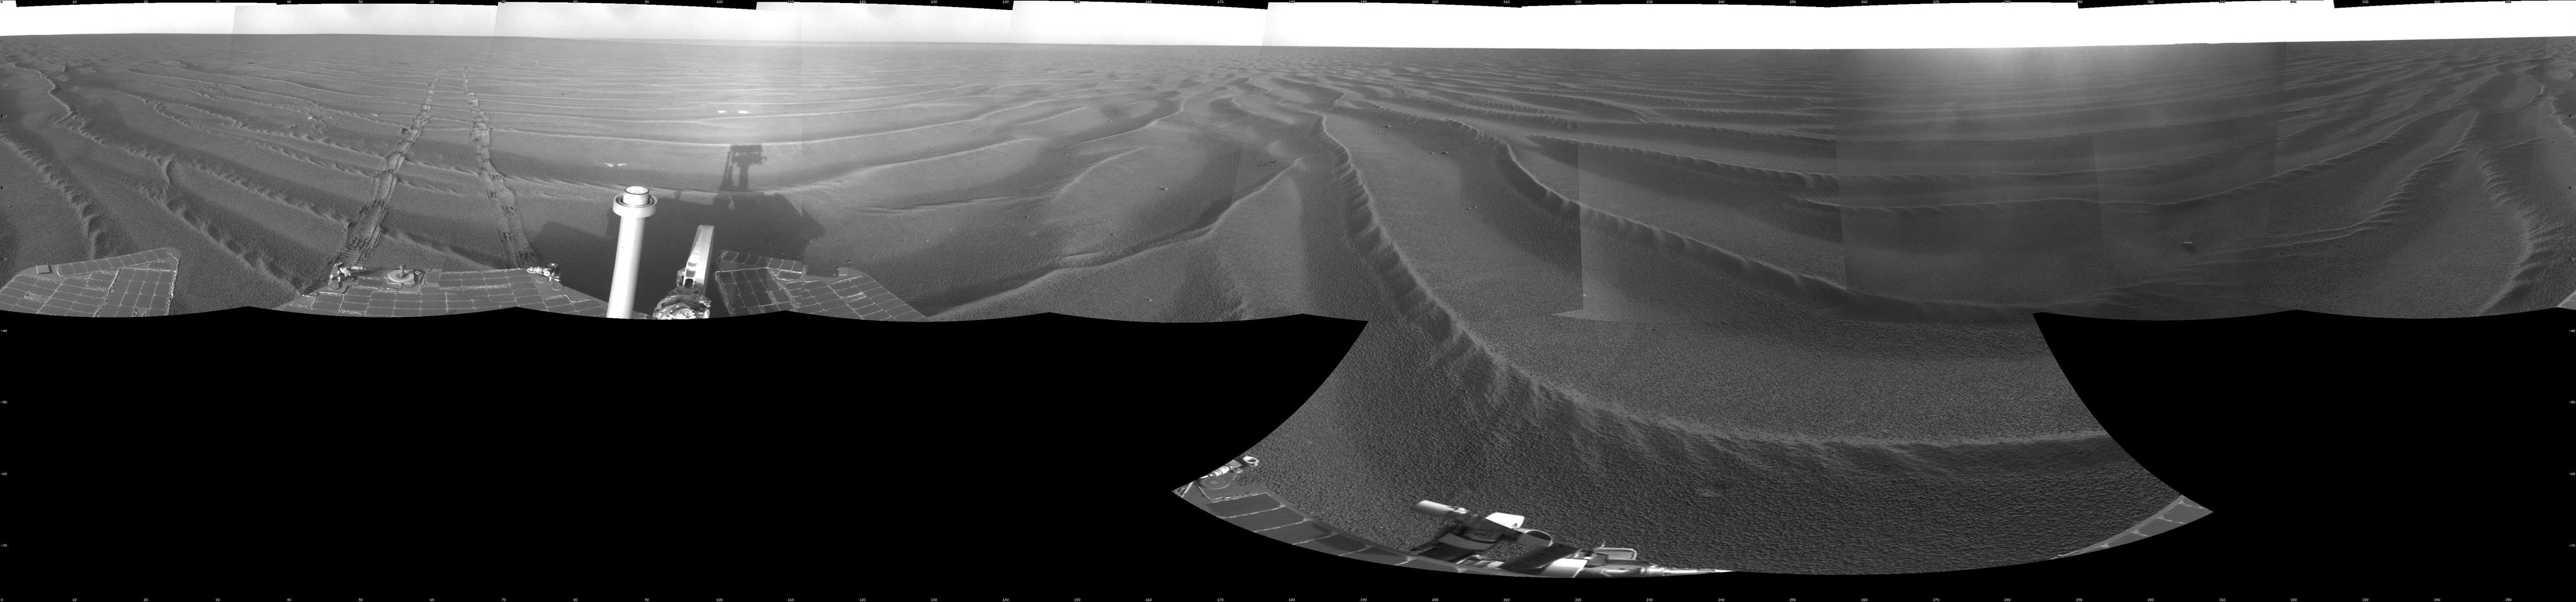 NASA's Mars Exploration Rover Opportunity used its navigation camera to take the images combined into this 360-degree view of the rover's surroundings.